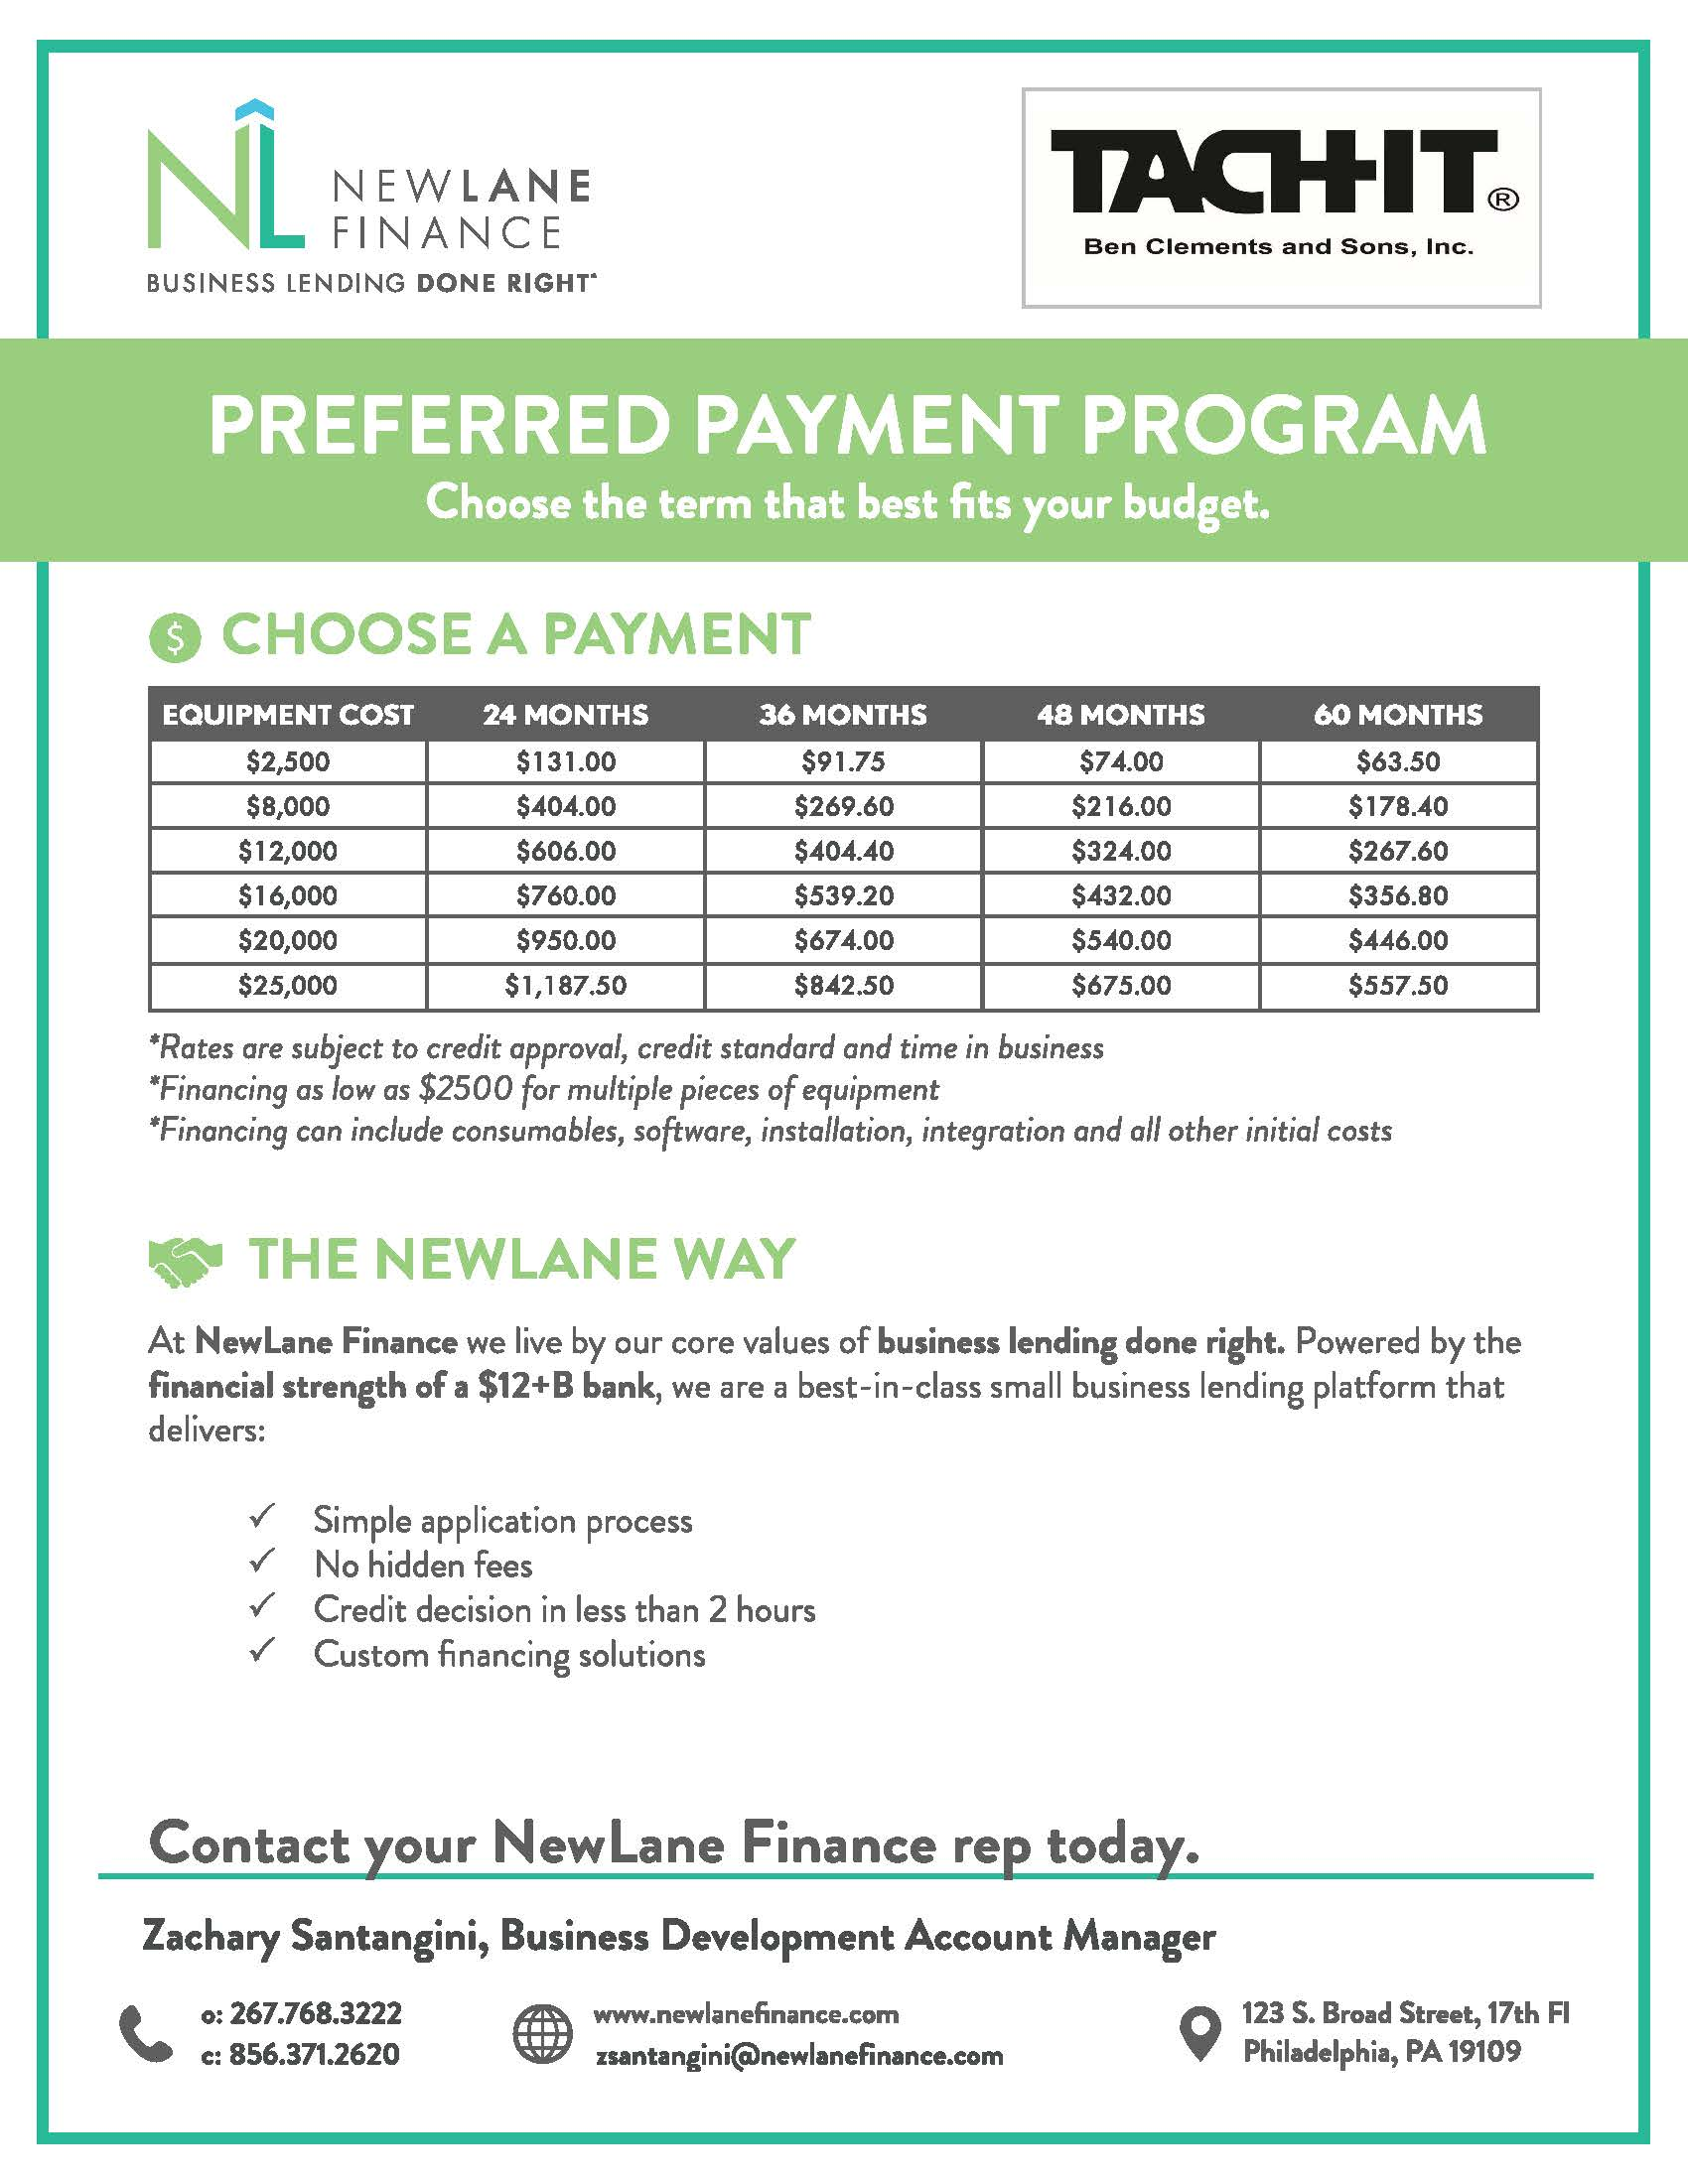 tach-it-preferred-payment-program